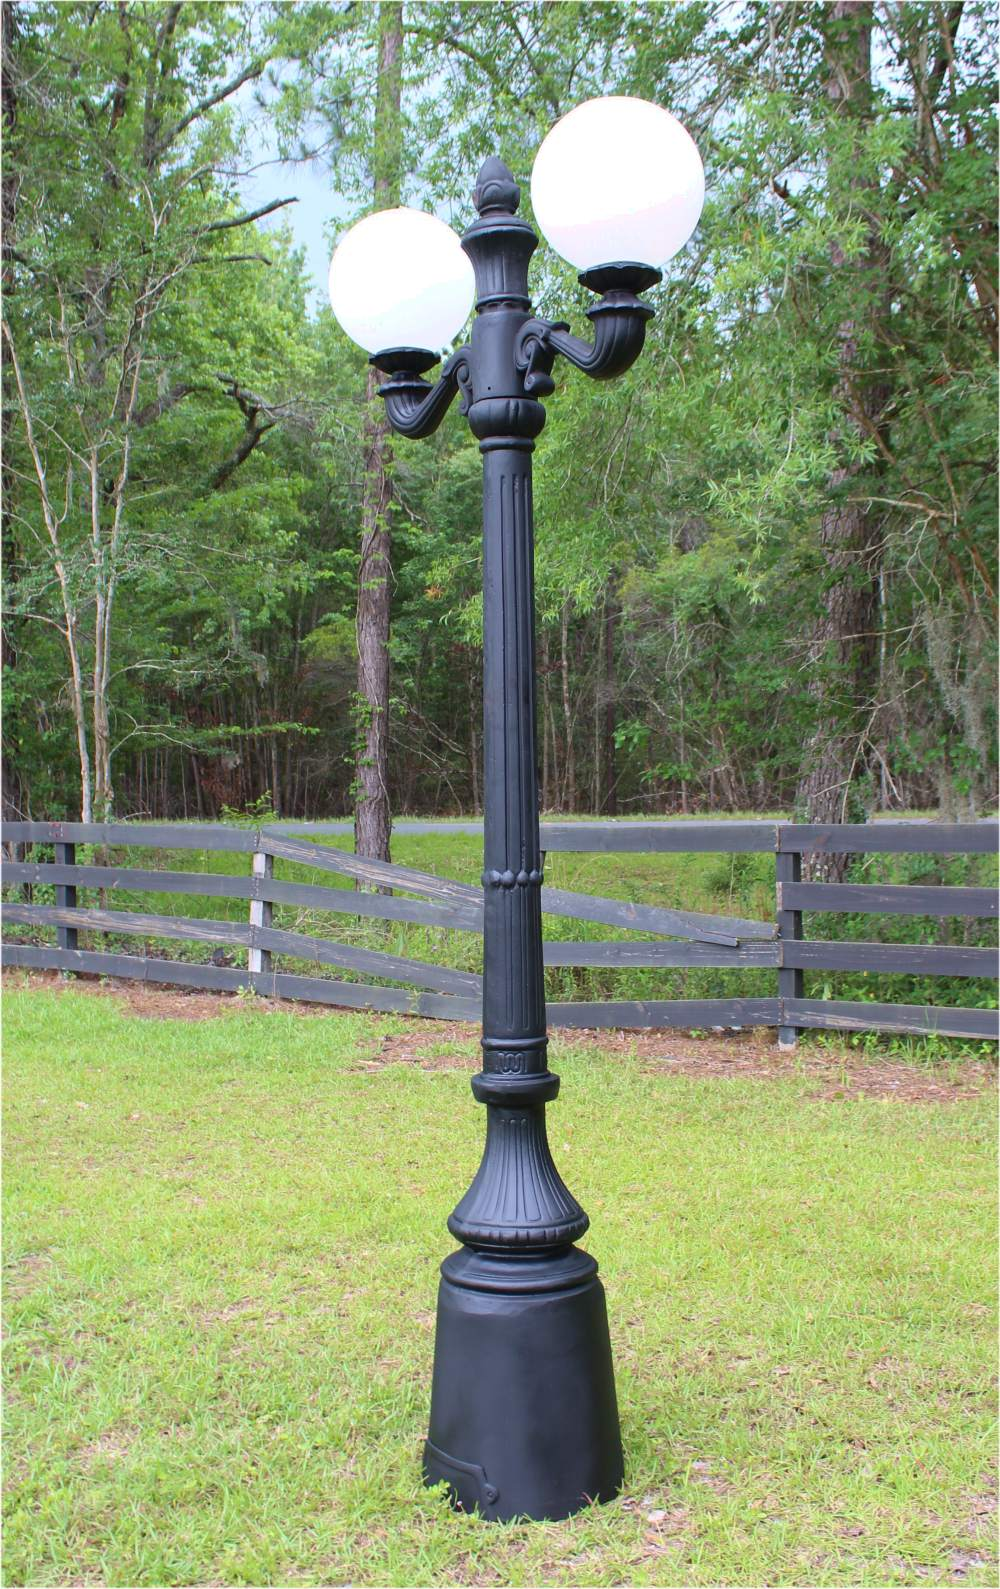 Garden Commercial Pole Light With Two Arms Acorn Or Ball